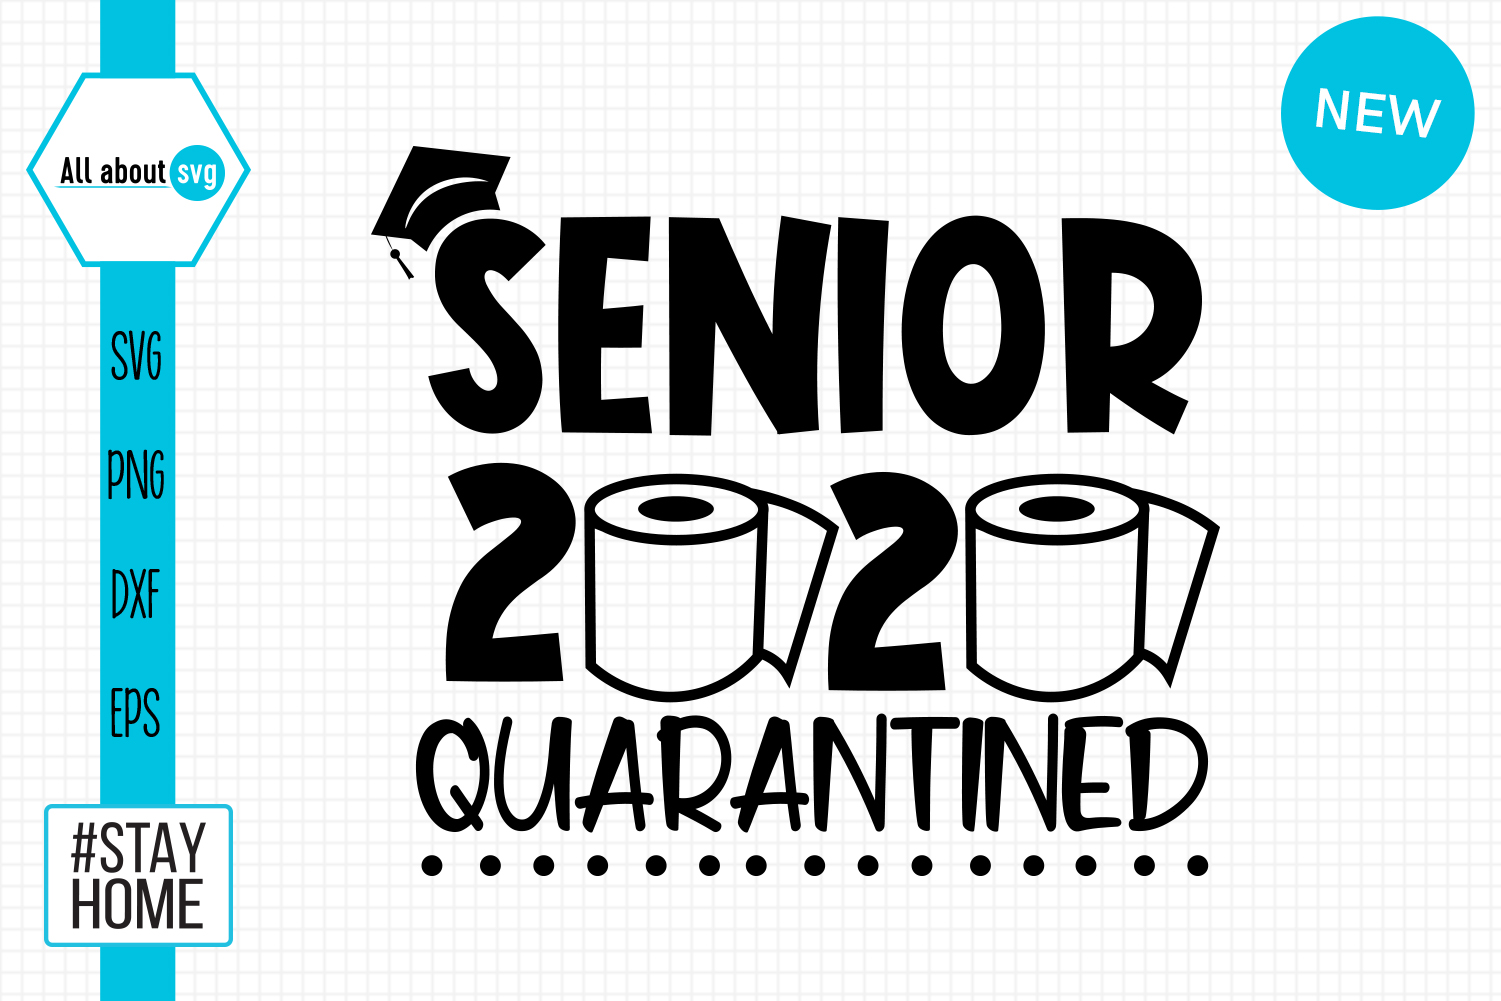 Senior 2020 Quarantined Svg Graphic By All About Svg Creative